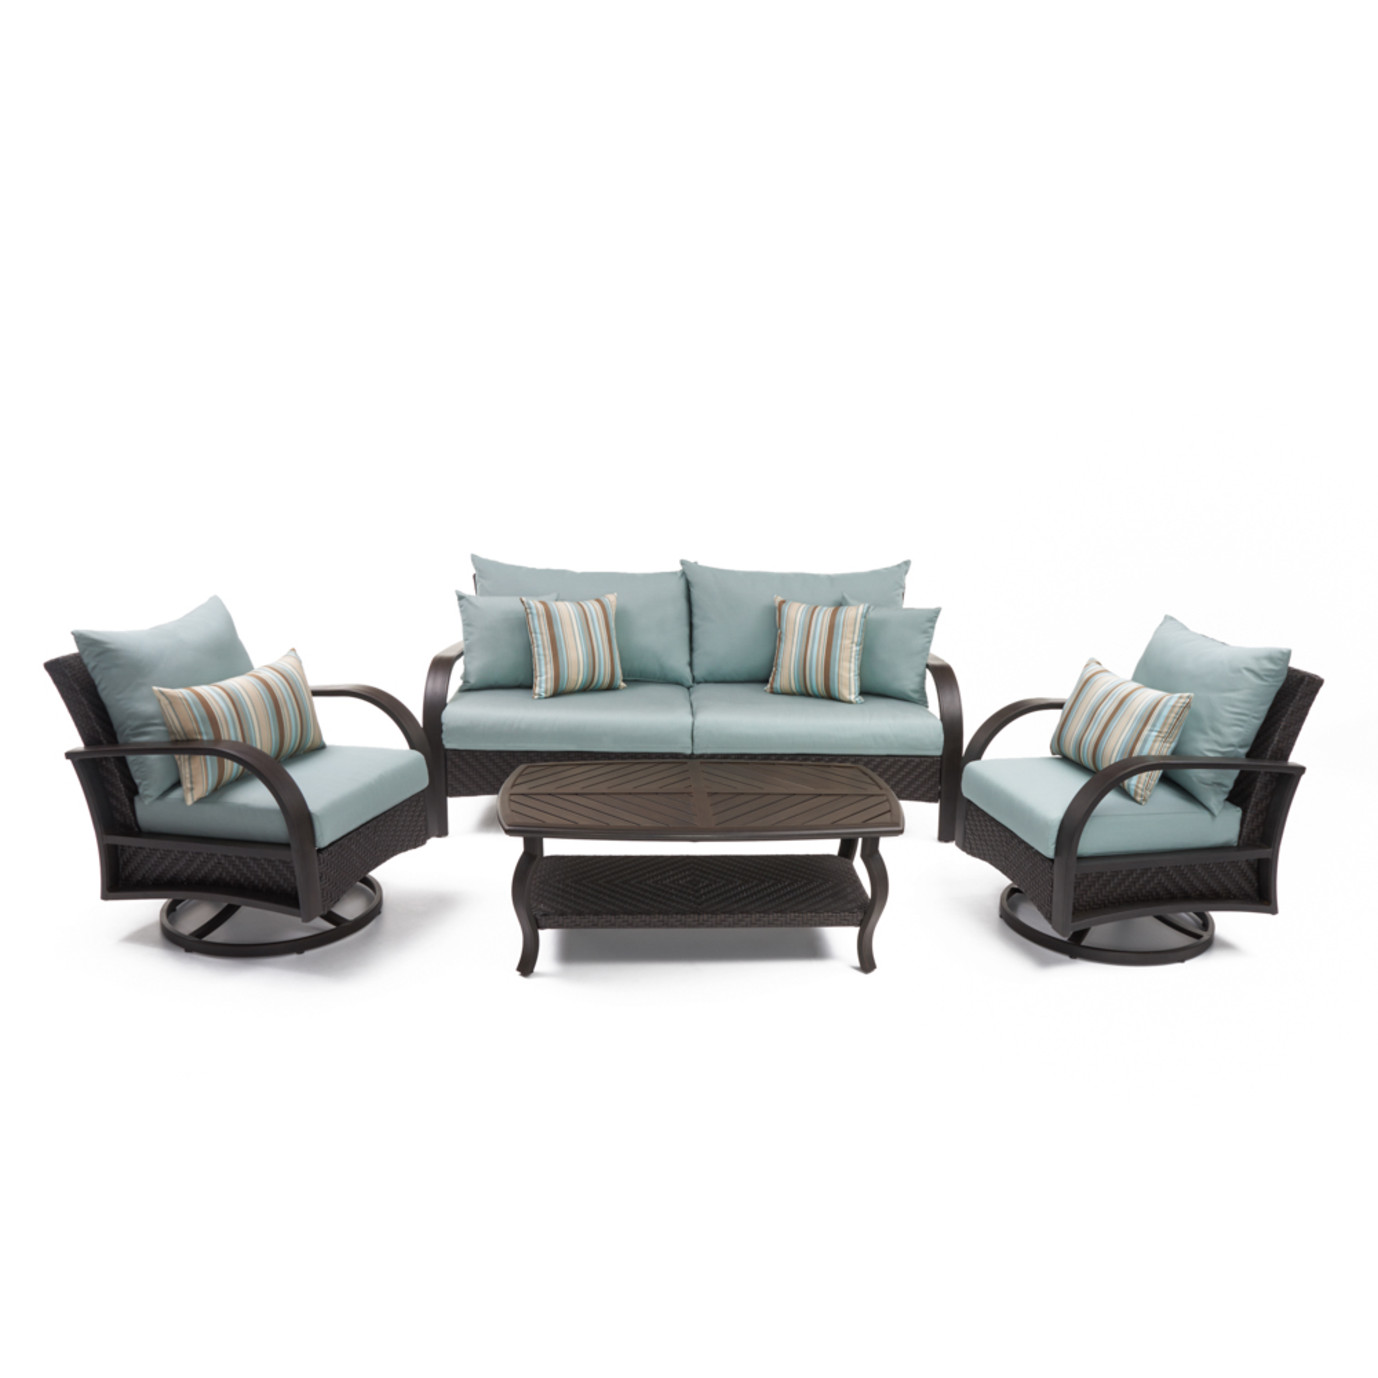 Barcelo™ 4 Piece Motion Club & Sofa Set - Bliss Blue